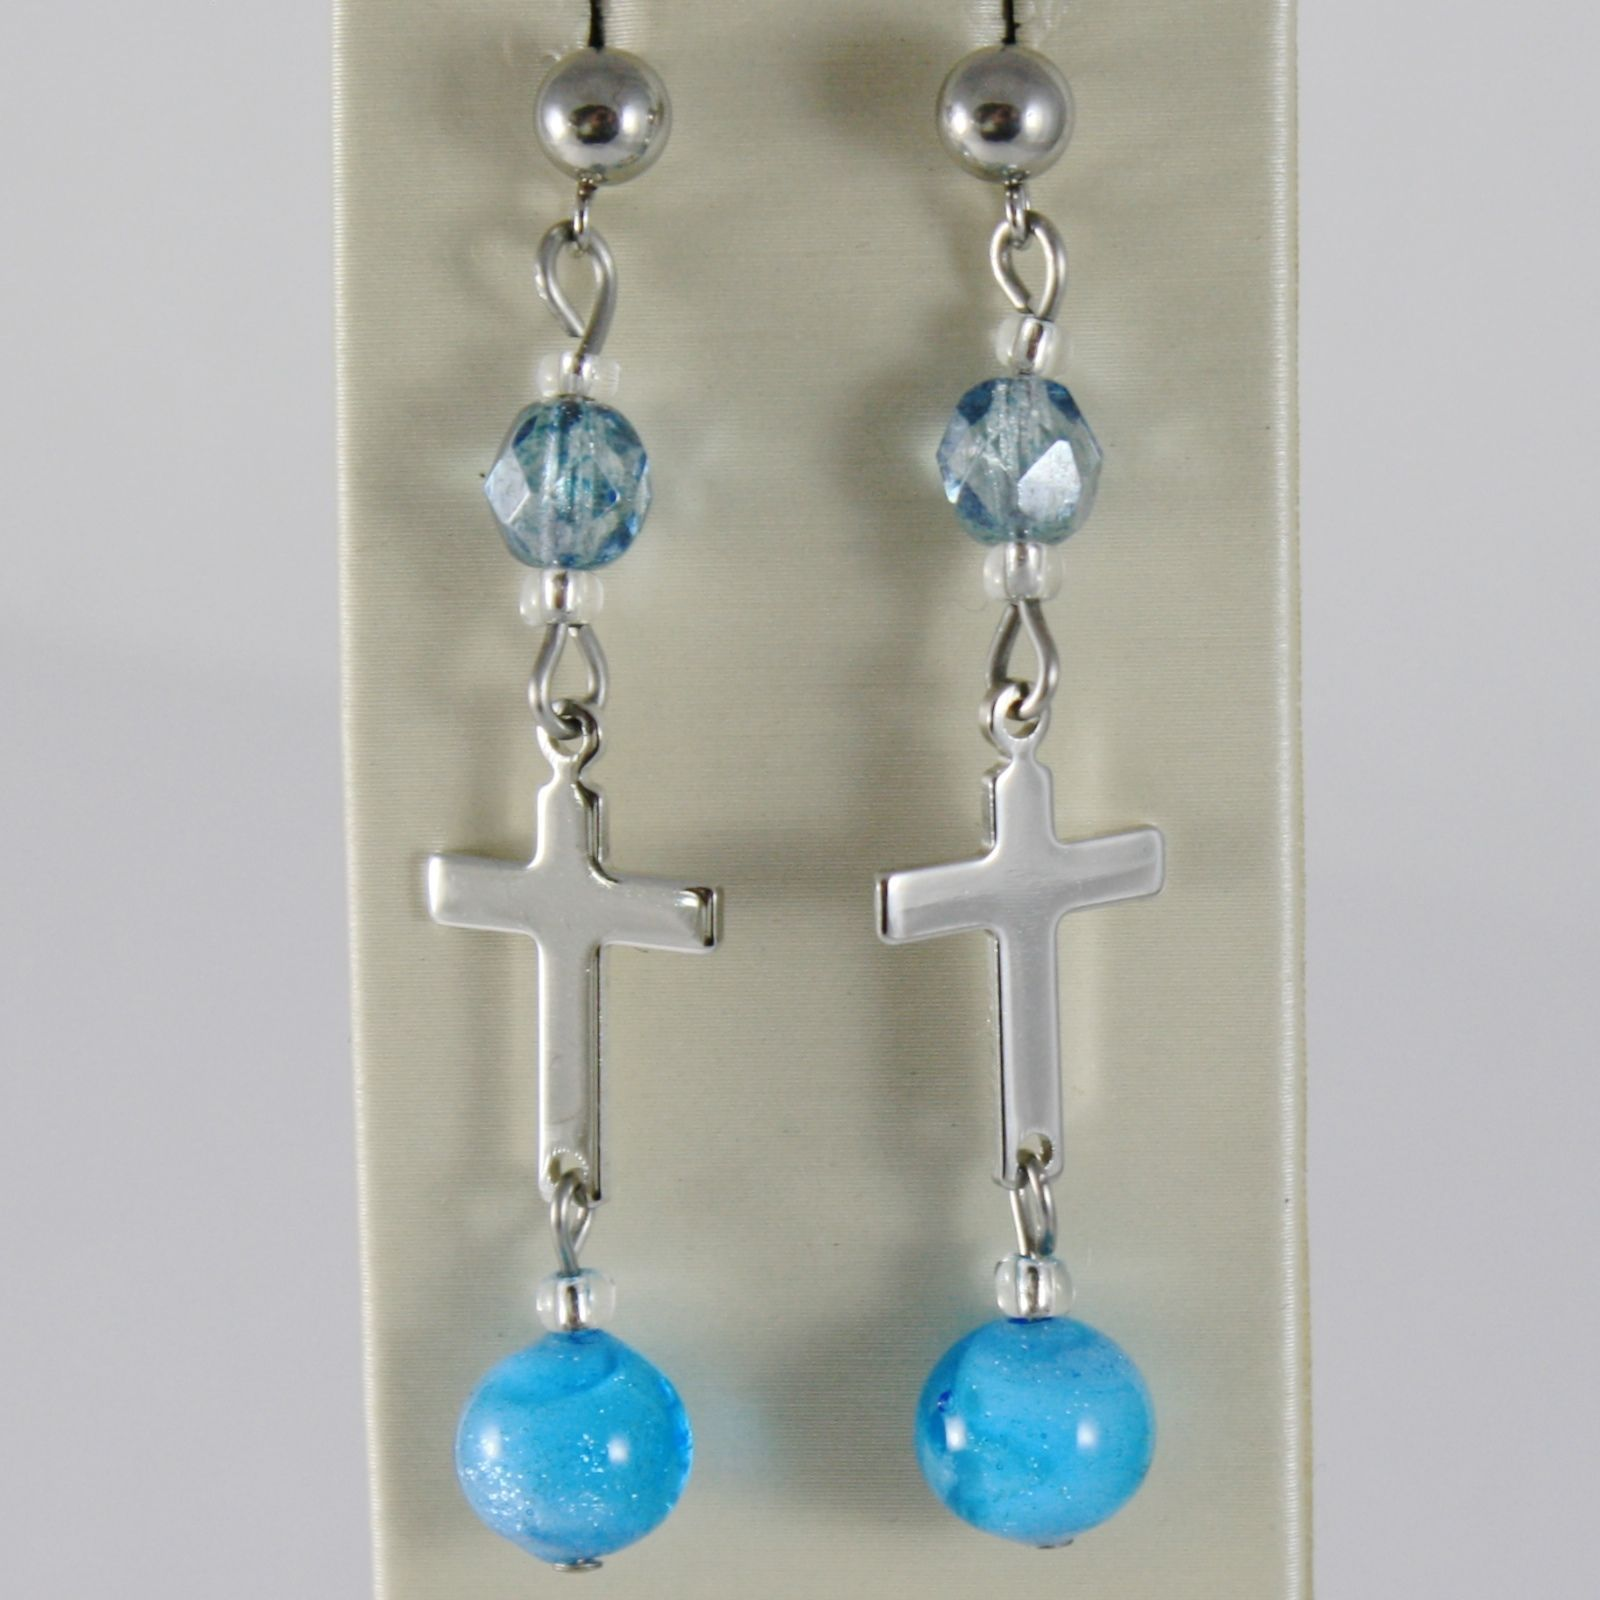 ANTICA MURRINA VENEZIA PENDANT EARRINGS BLUE WITH CROSS AND SPHERES BALLS BALL